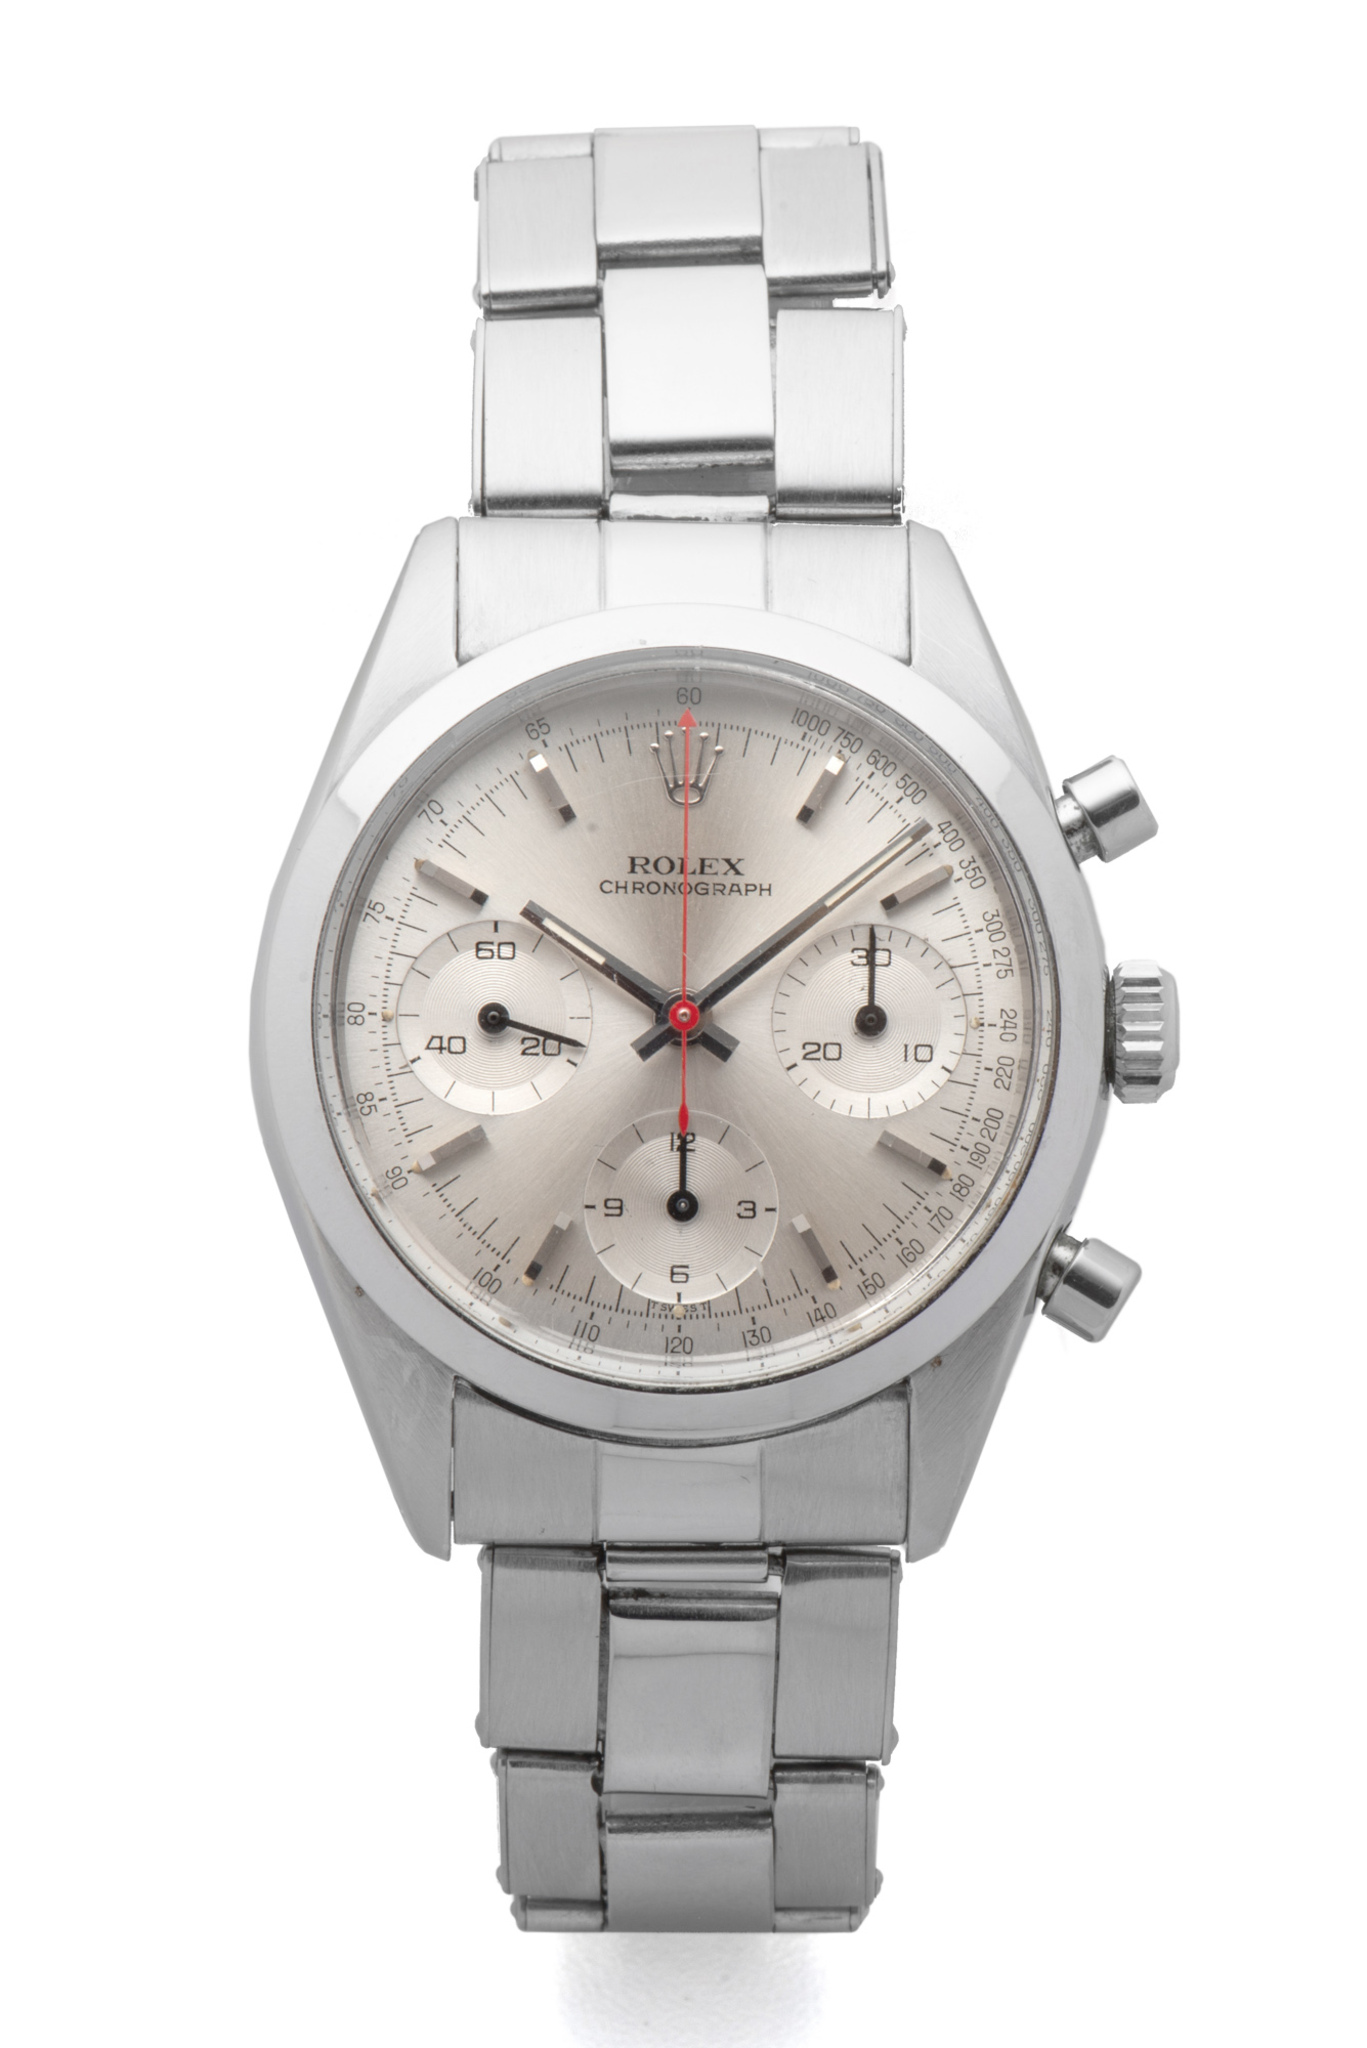 LOT 103 ROLEX, REF. 6238, PRE-DAYTONA, GEORGE LAZENBY « JAMES BOND », STEEL Fine and extremely rare, stainless steel, manual-winding wristwatch with silver dial, three registers and red chronograph hand. Rarissime et superbe chronographe en acier. Boîtier rond. Couronne et fond vissés. Cadran argent avec trois compteurs. Trotteuse centrale du chronographe rouge. Mouvement mécanique manuel. BrandRolex Reference6238 YearCirca 1965 Calibre 722 Case No.1206513 Bracelet Rolex Oyster riveted stainless steel 7205/06 Dimensions36 mm SignatureCase, dial and movement AccessoriesOriginal invoice from Bucherer, Christie's London sale purchase invoice, Bijoux Signés Ltd. purchase invoice, black and white picture of a scene of the motion picture with Caterina Von Shell and George Lazenby. EUR 300,000 - 500,000